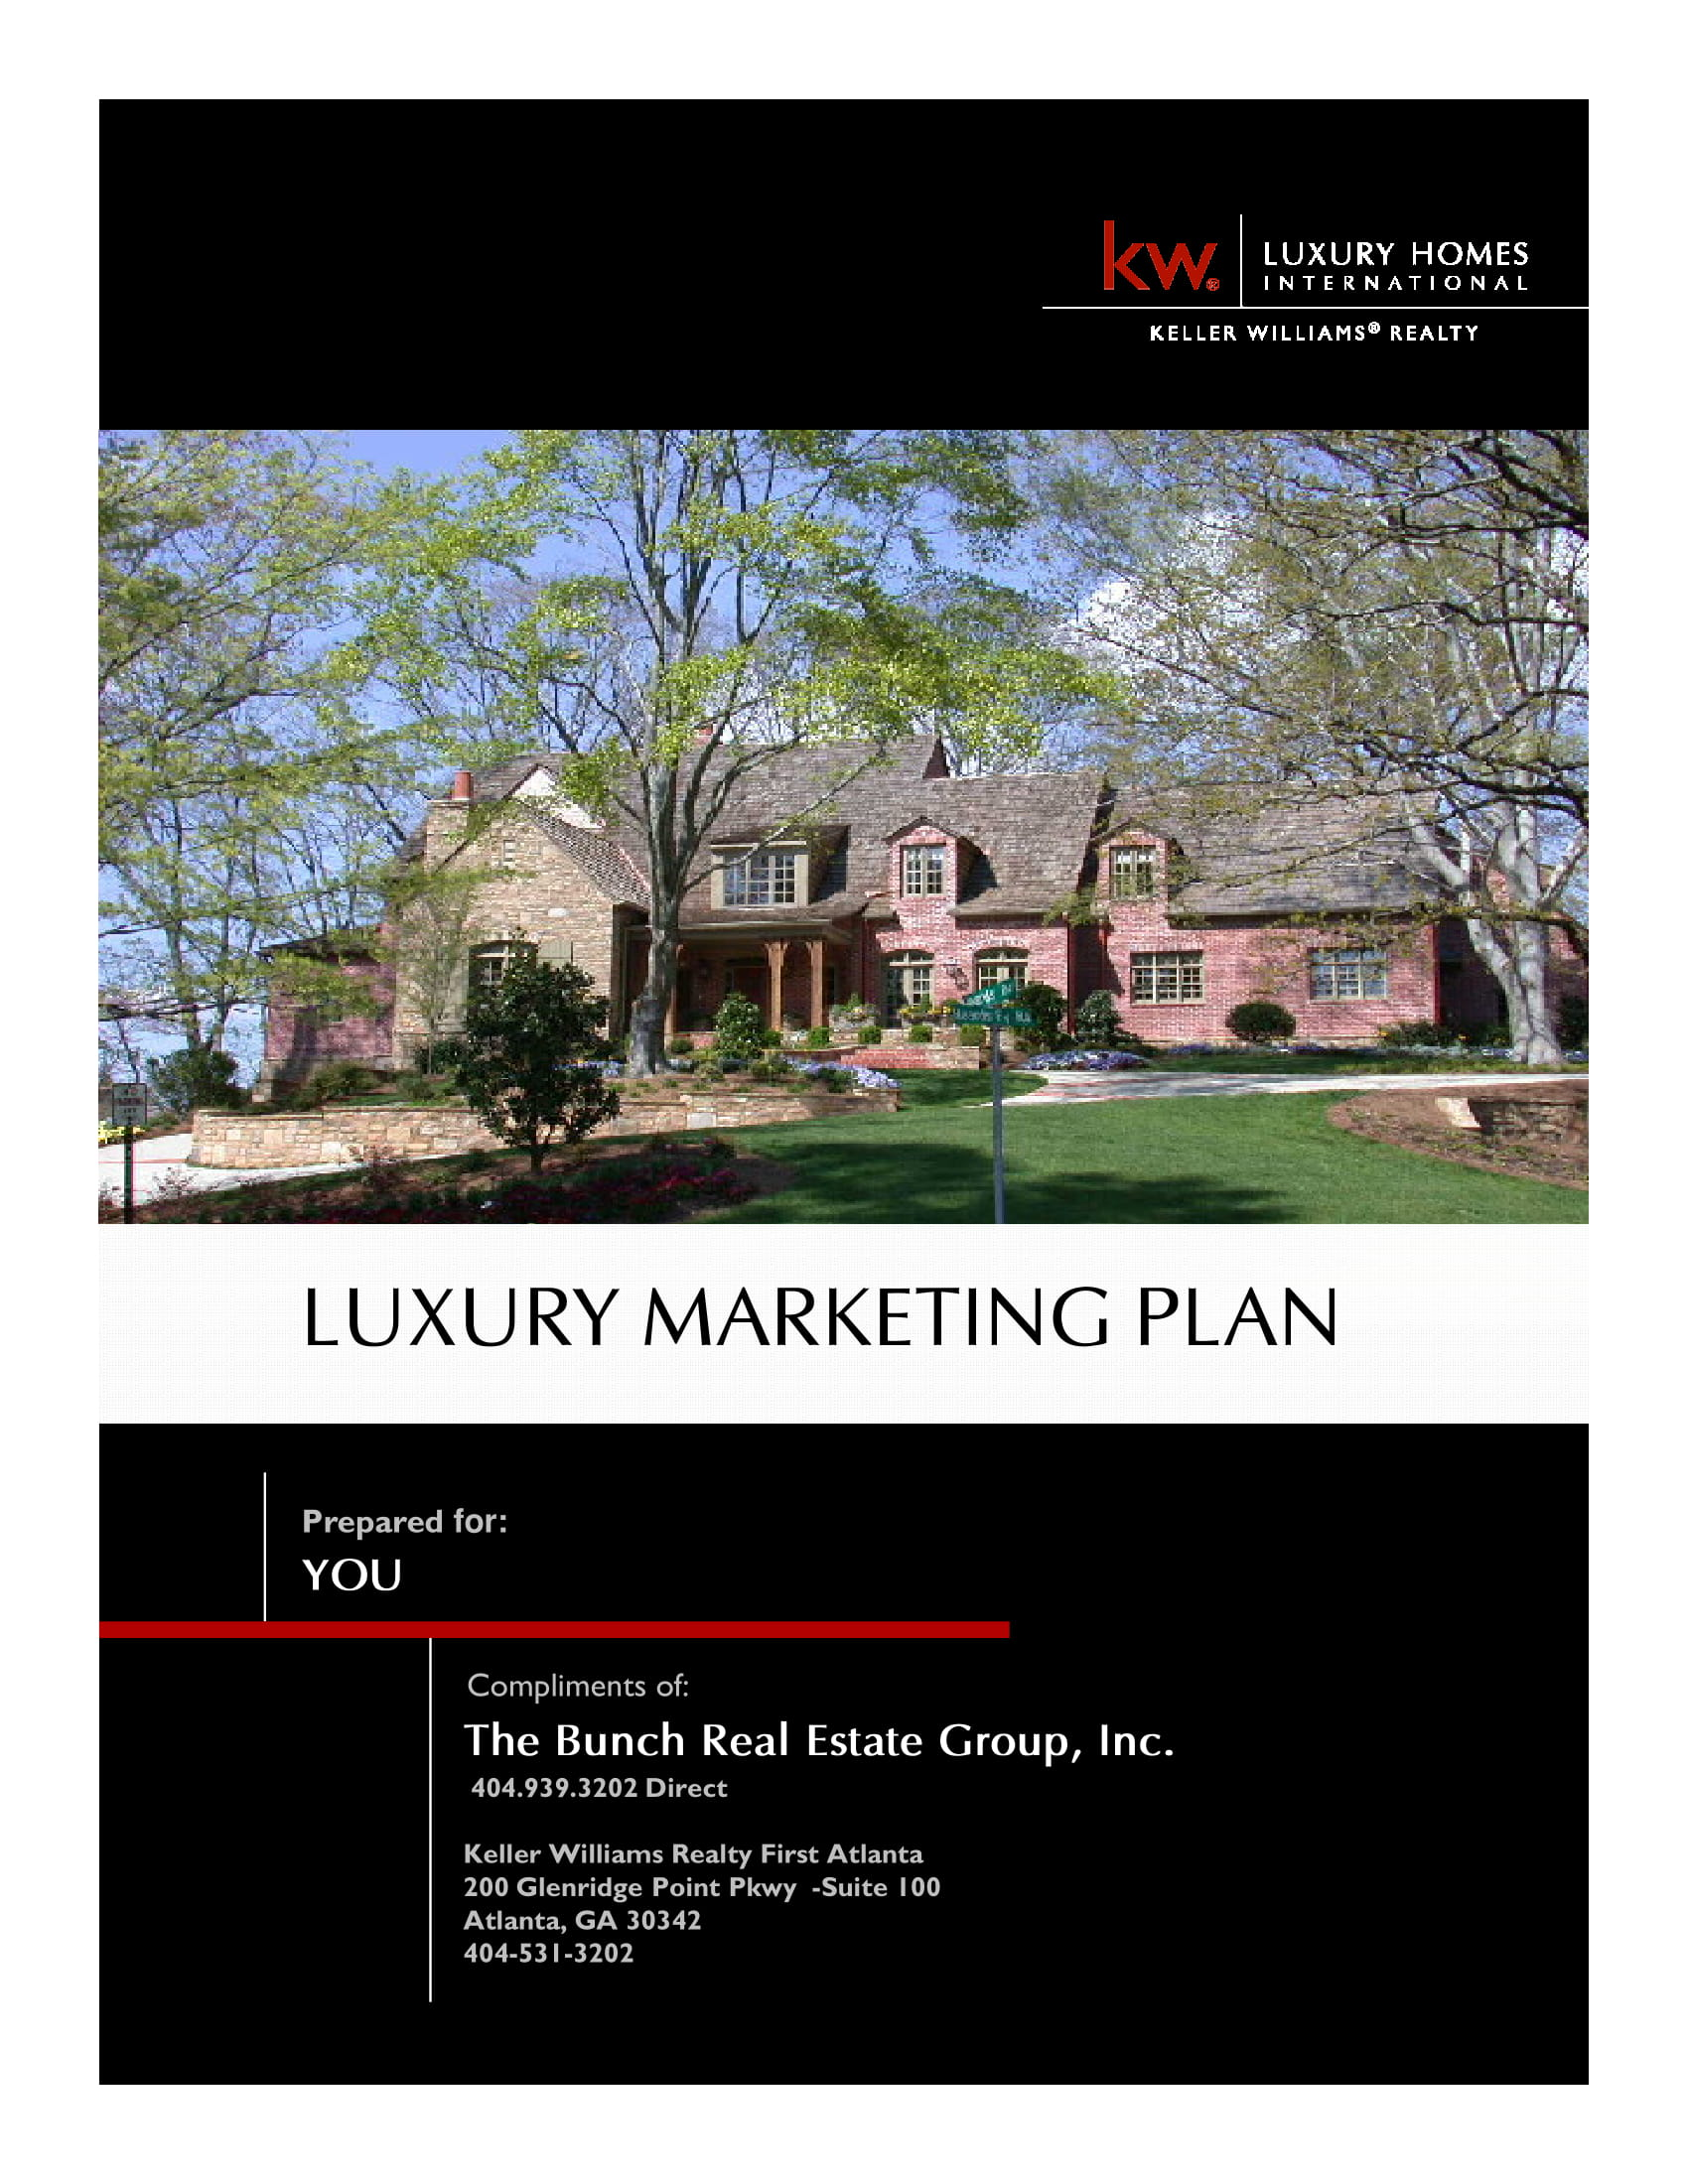 luxury real estate marketing plan example 01